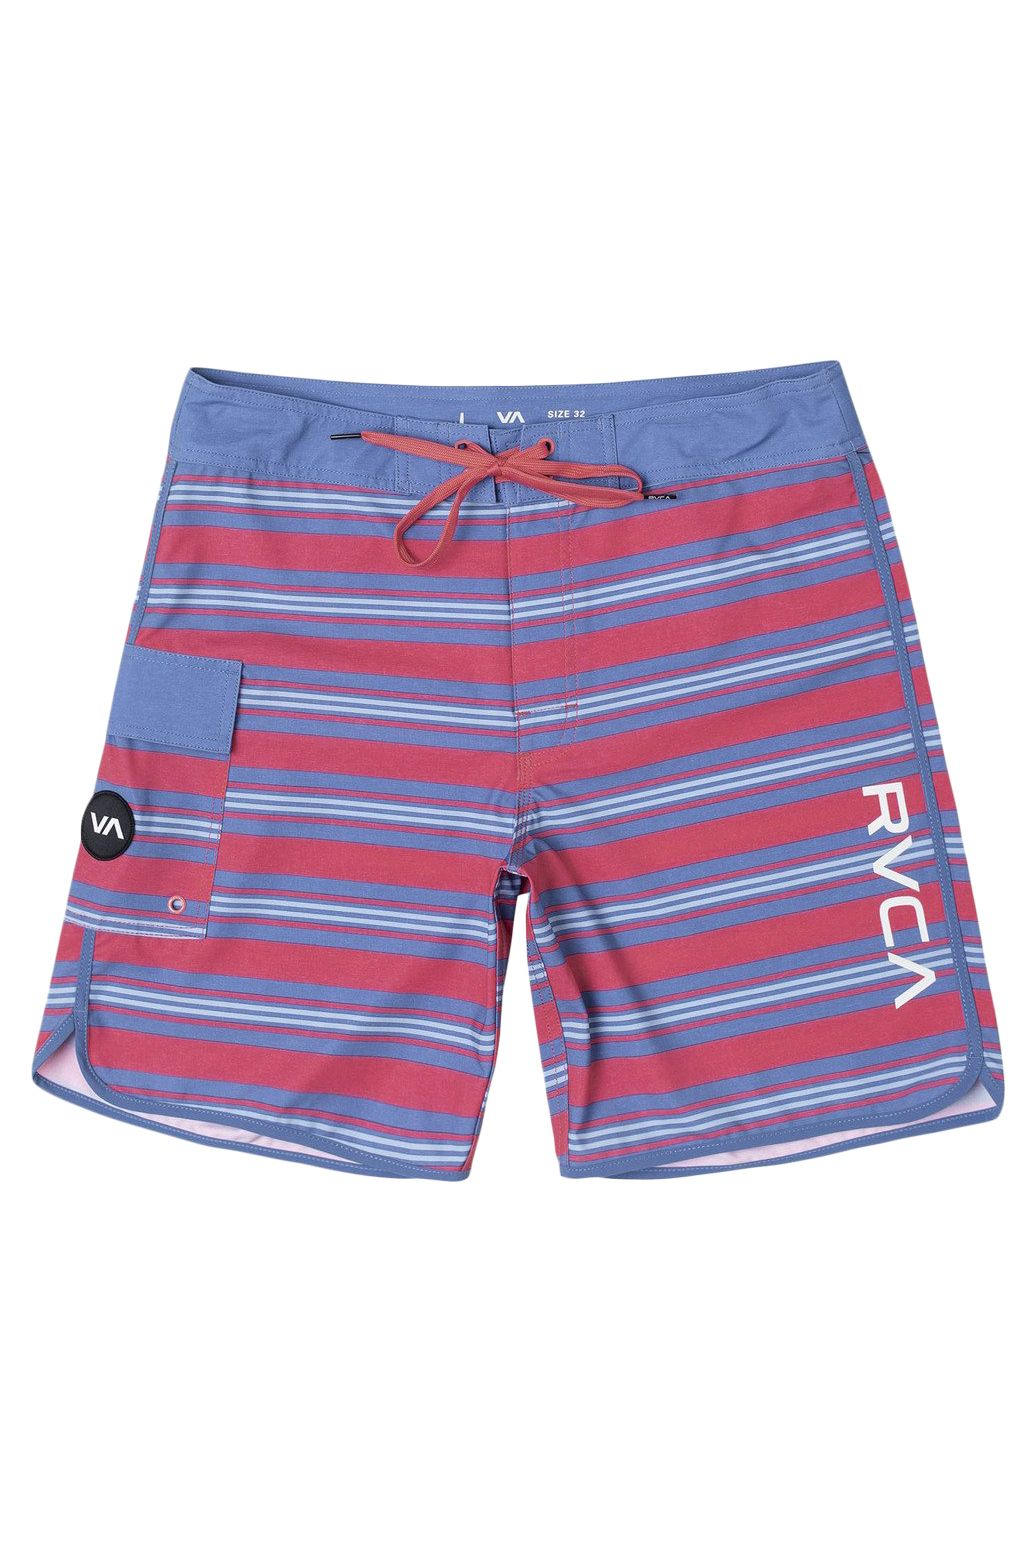 Boardshorts RVCA EASTERN TRUNK 18 Coral Pink